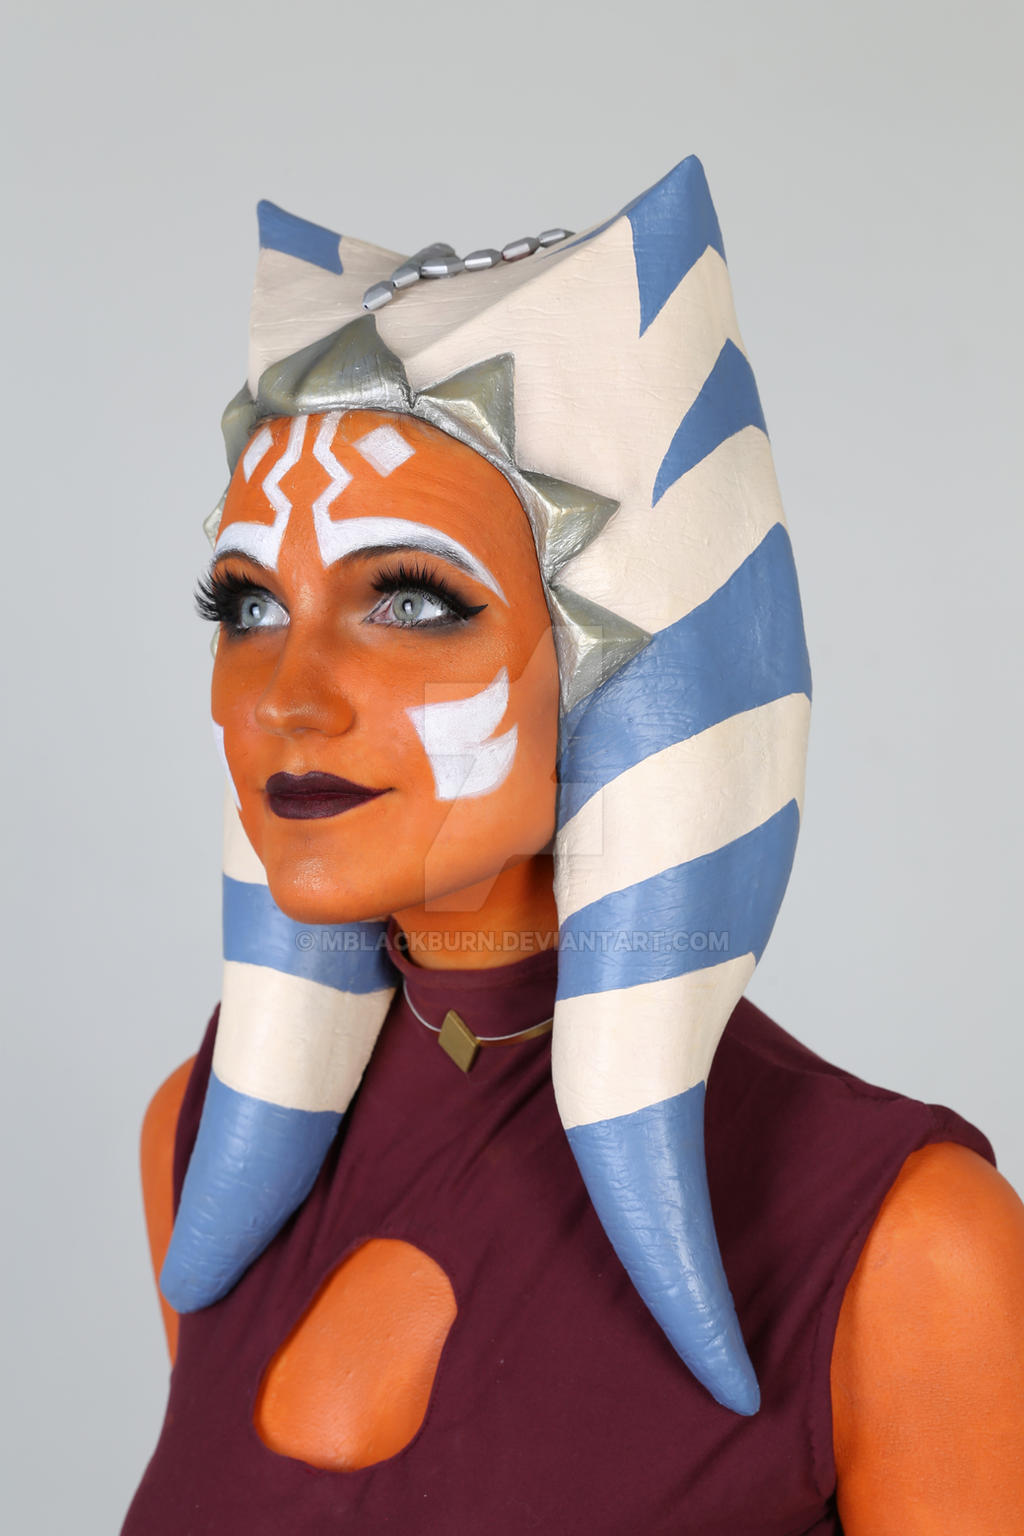 Ahsoka Tano Cosplay Portrait by mblackburn